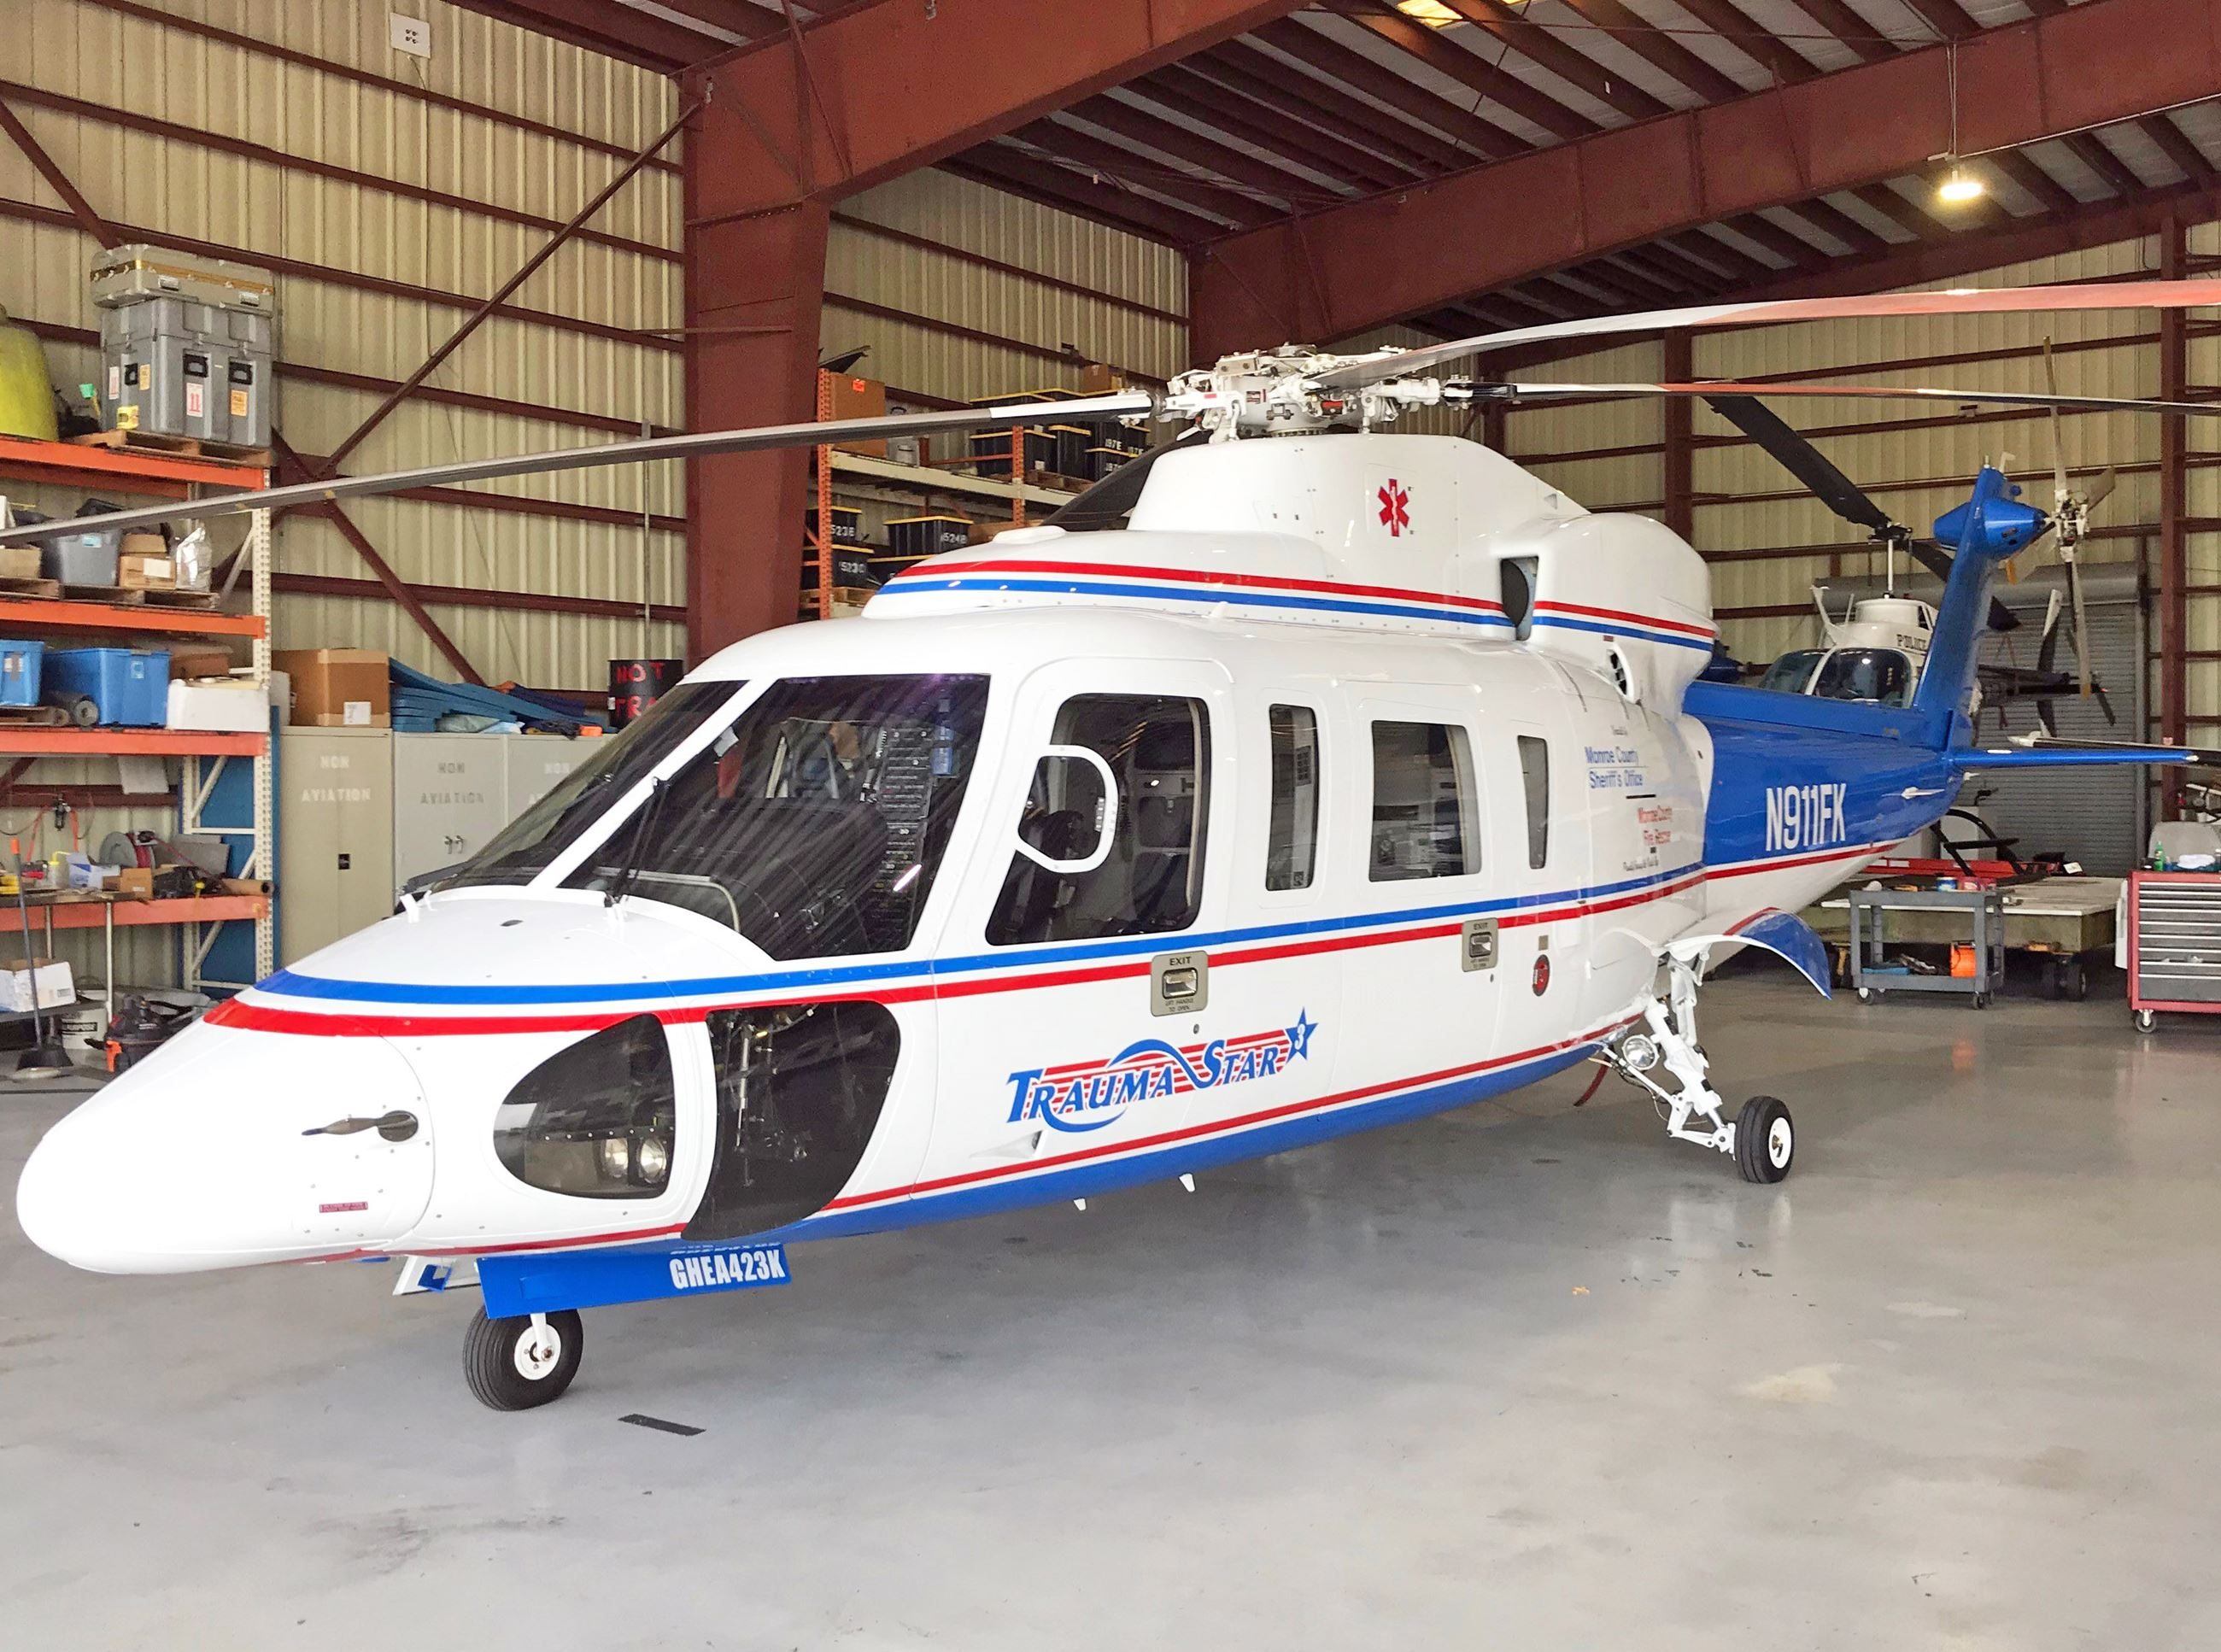 The new Trauma Star Helicopter arrives in Oct. 2019